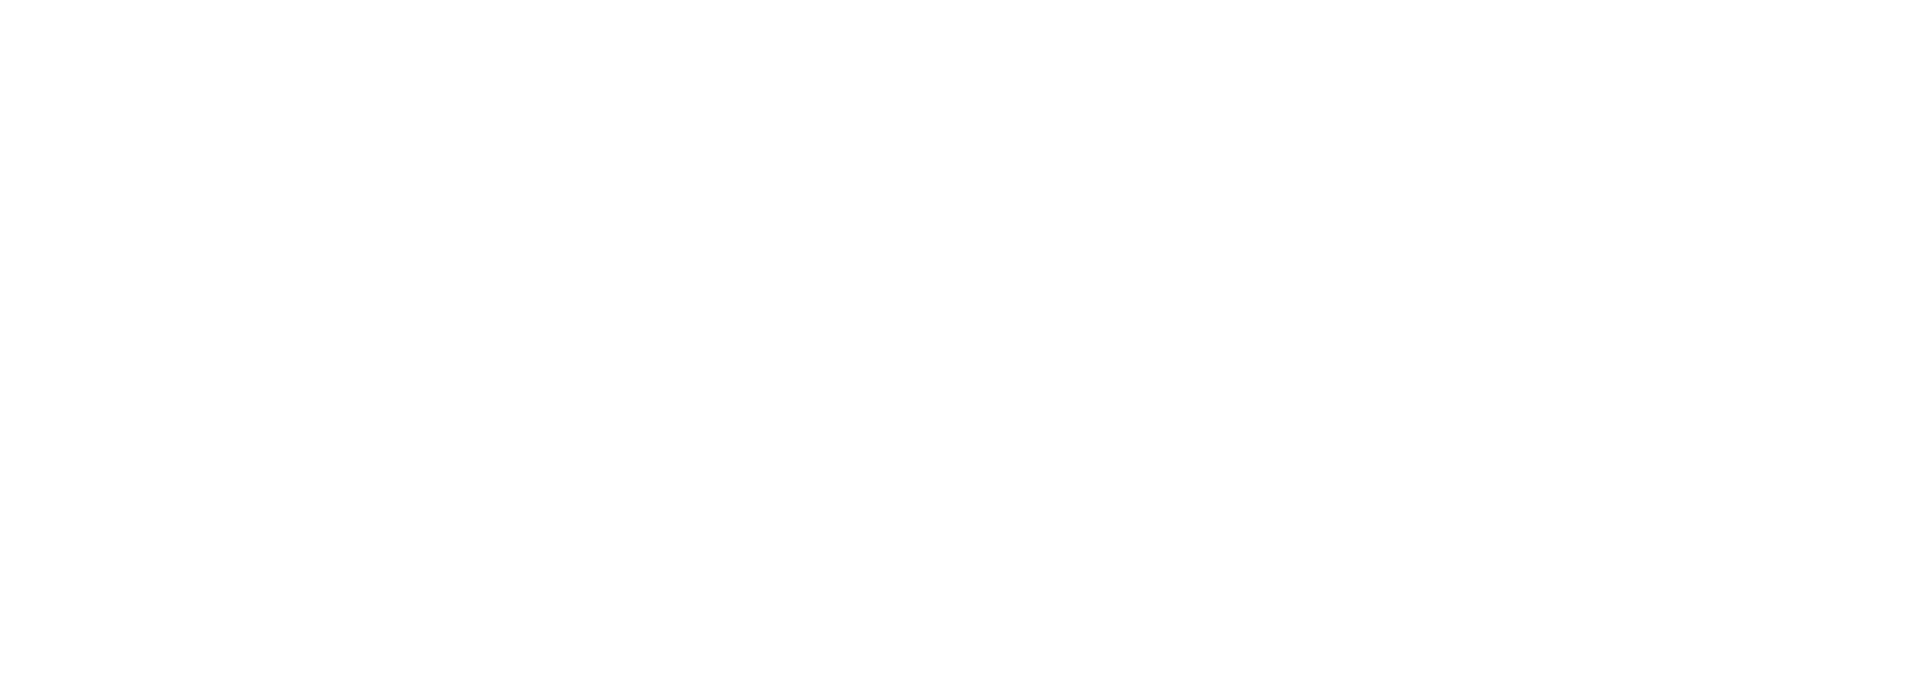 banner文字